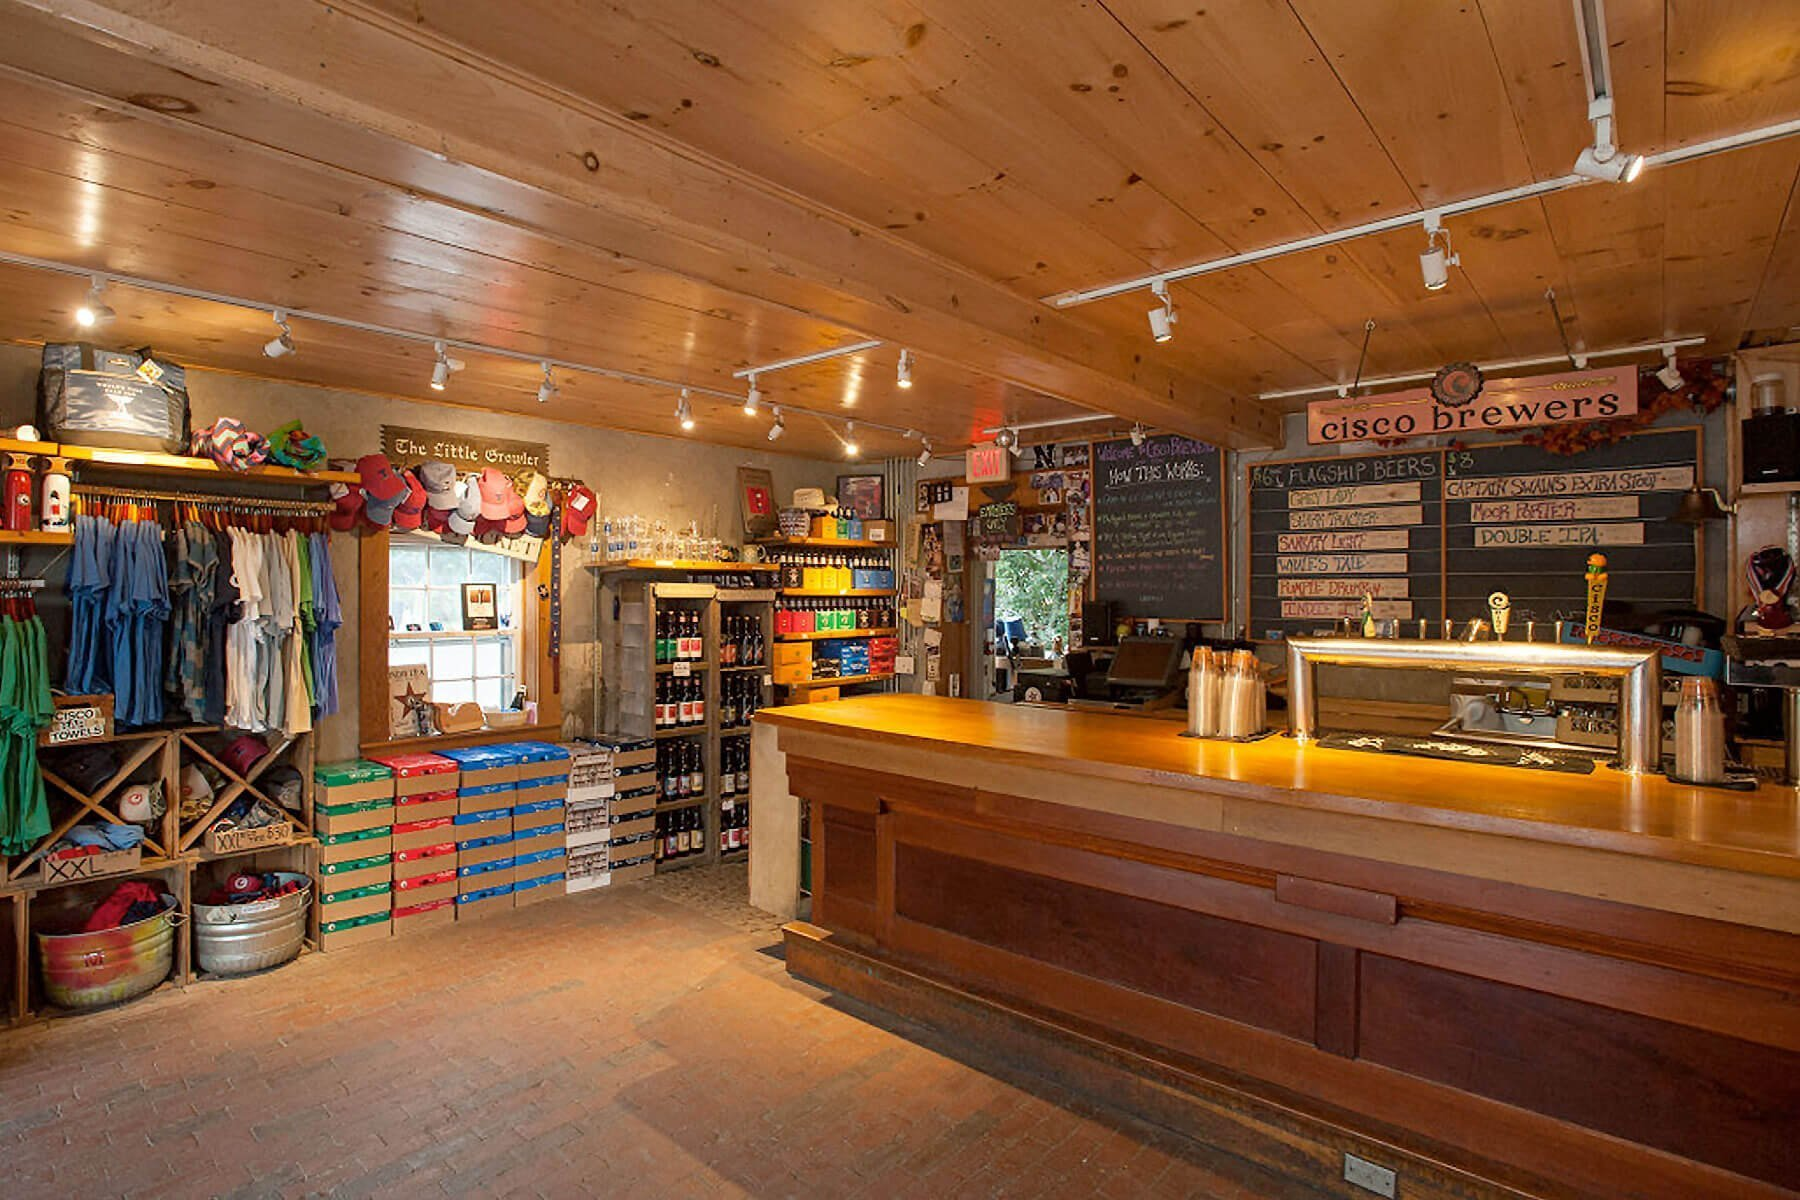 Inside the Cisco Brewers taproom in Nantucket, Massachusetts